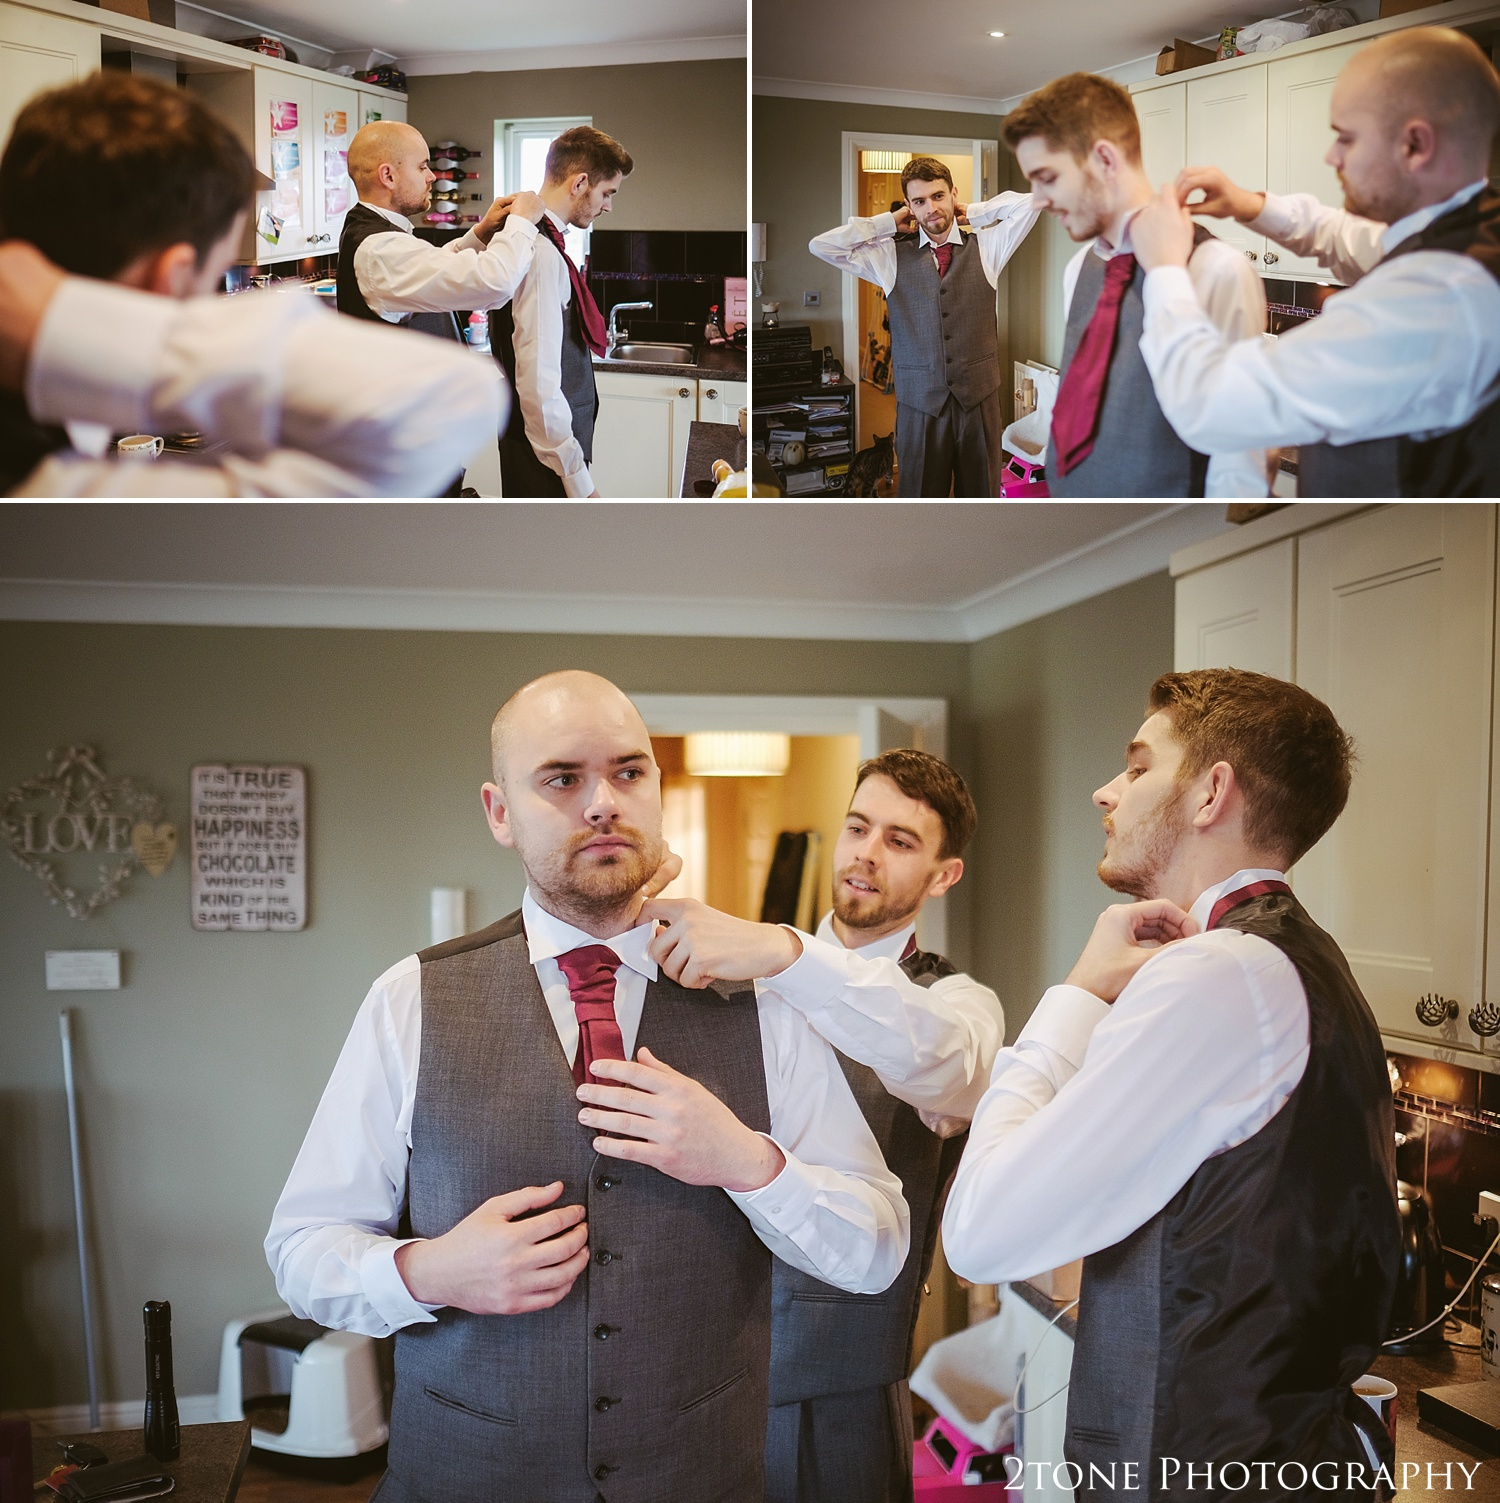 The groom getting ready.  Weddings at the Vermonth Hotel by wedding photographers 2tone Photography www.2tonephotography.co.uk